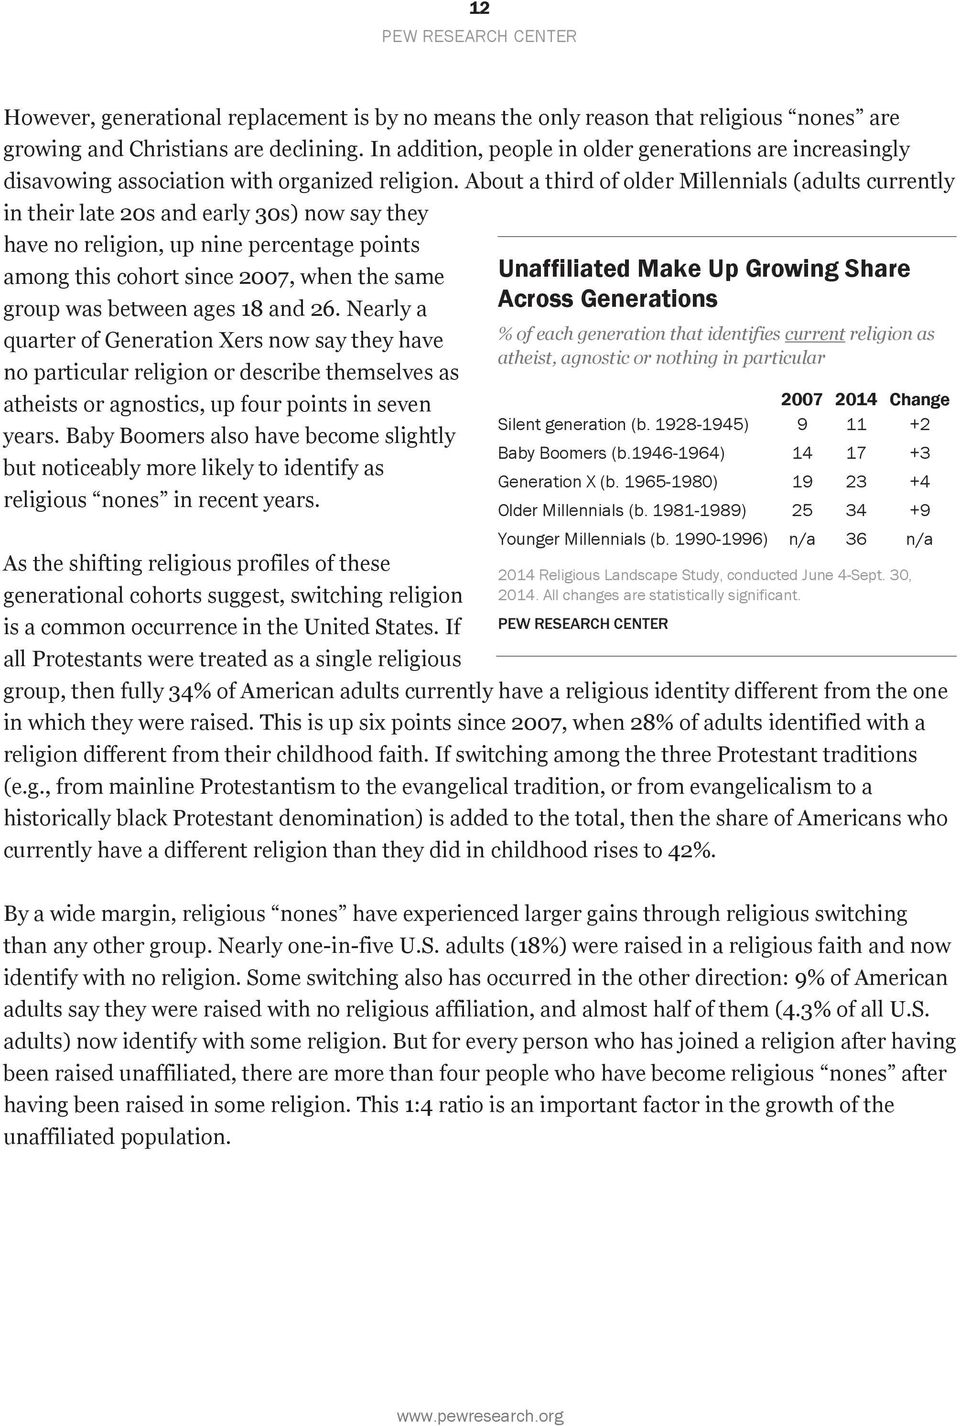 About a third of older Millennials (adults currently in their late 20s and early 30s) now say they have no religion, up nine percentage points among this cohort since 2007, when the same group was